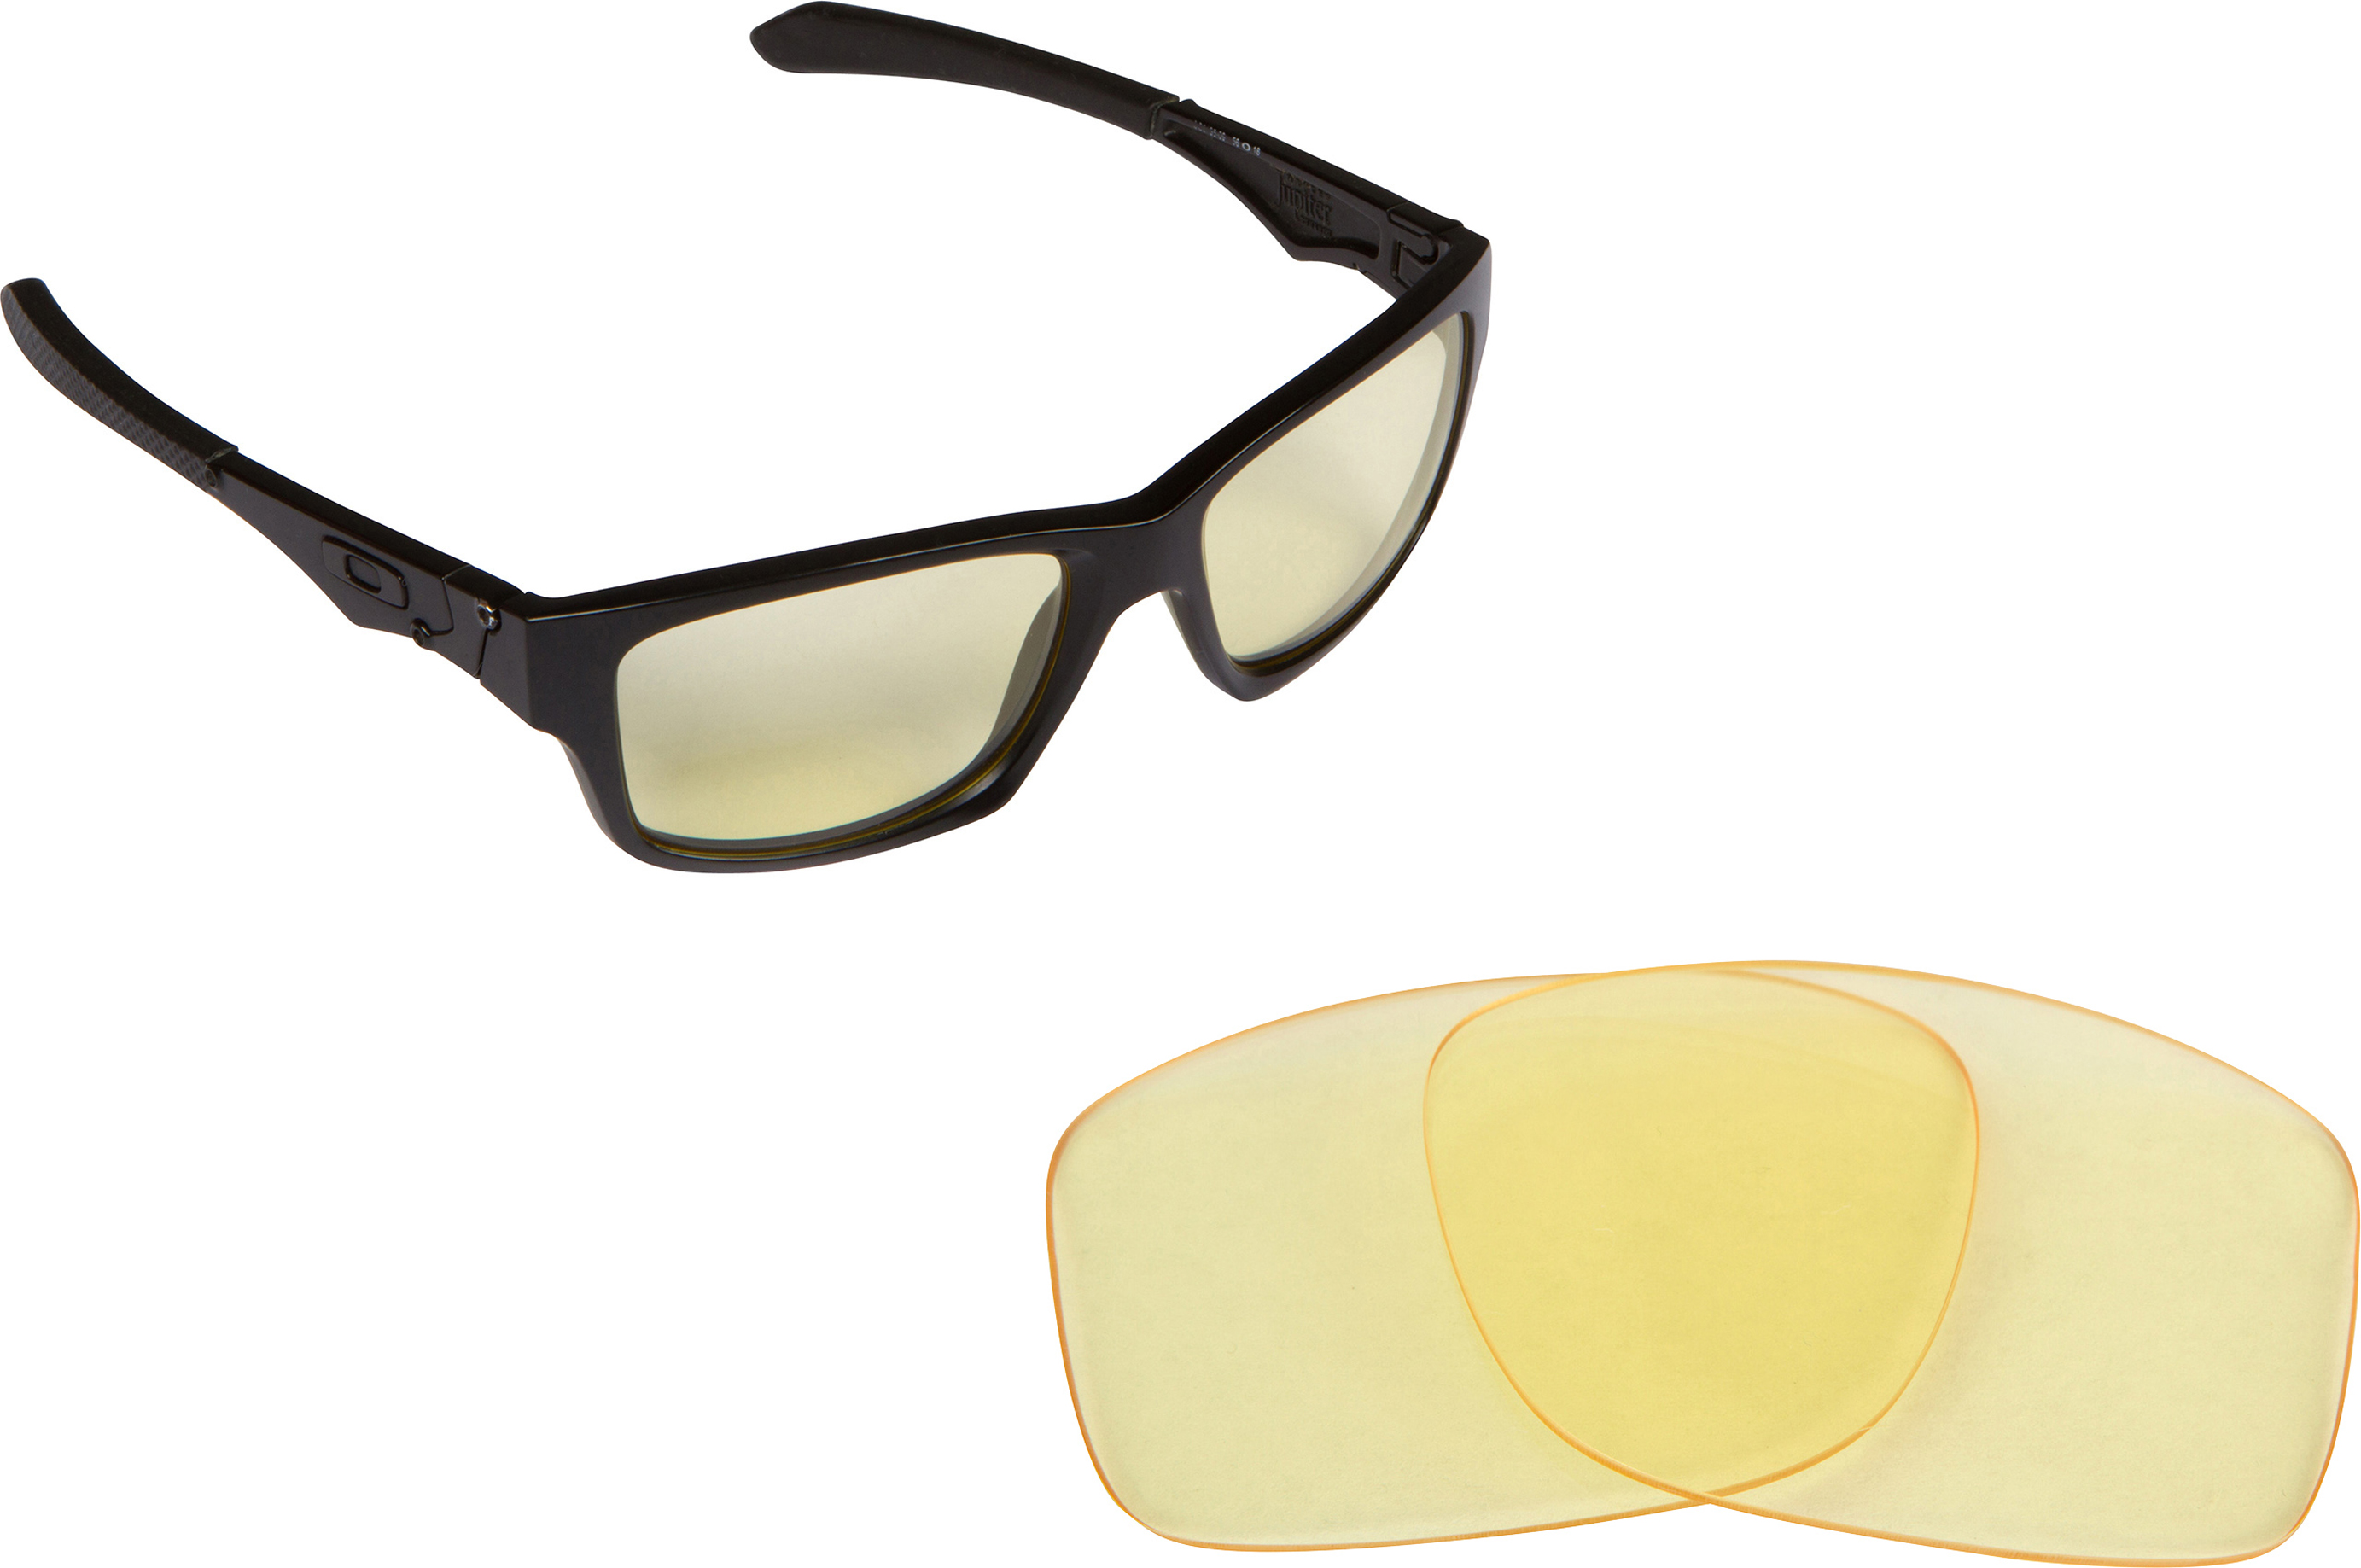 86faff0292 JUPITER CARBON Replacement Lenses by SEEK OPTICS to fit OAKLEY ...